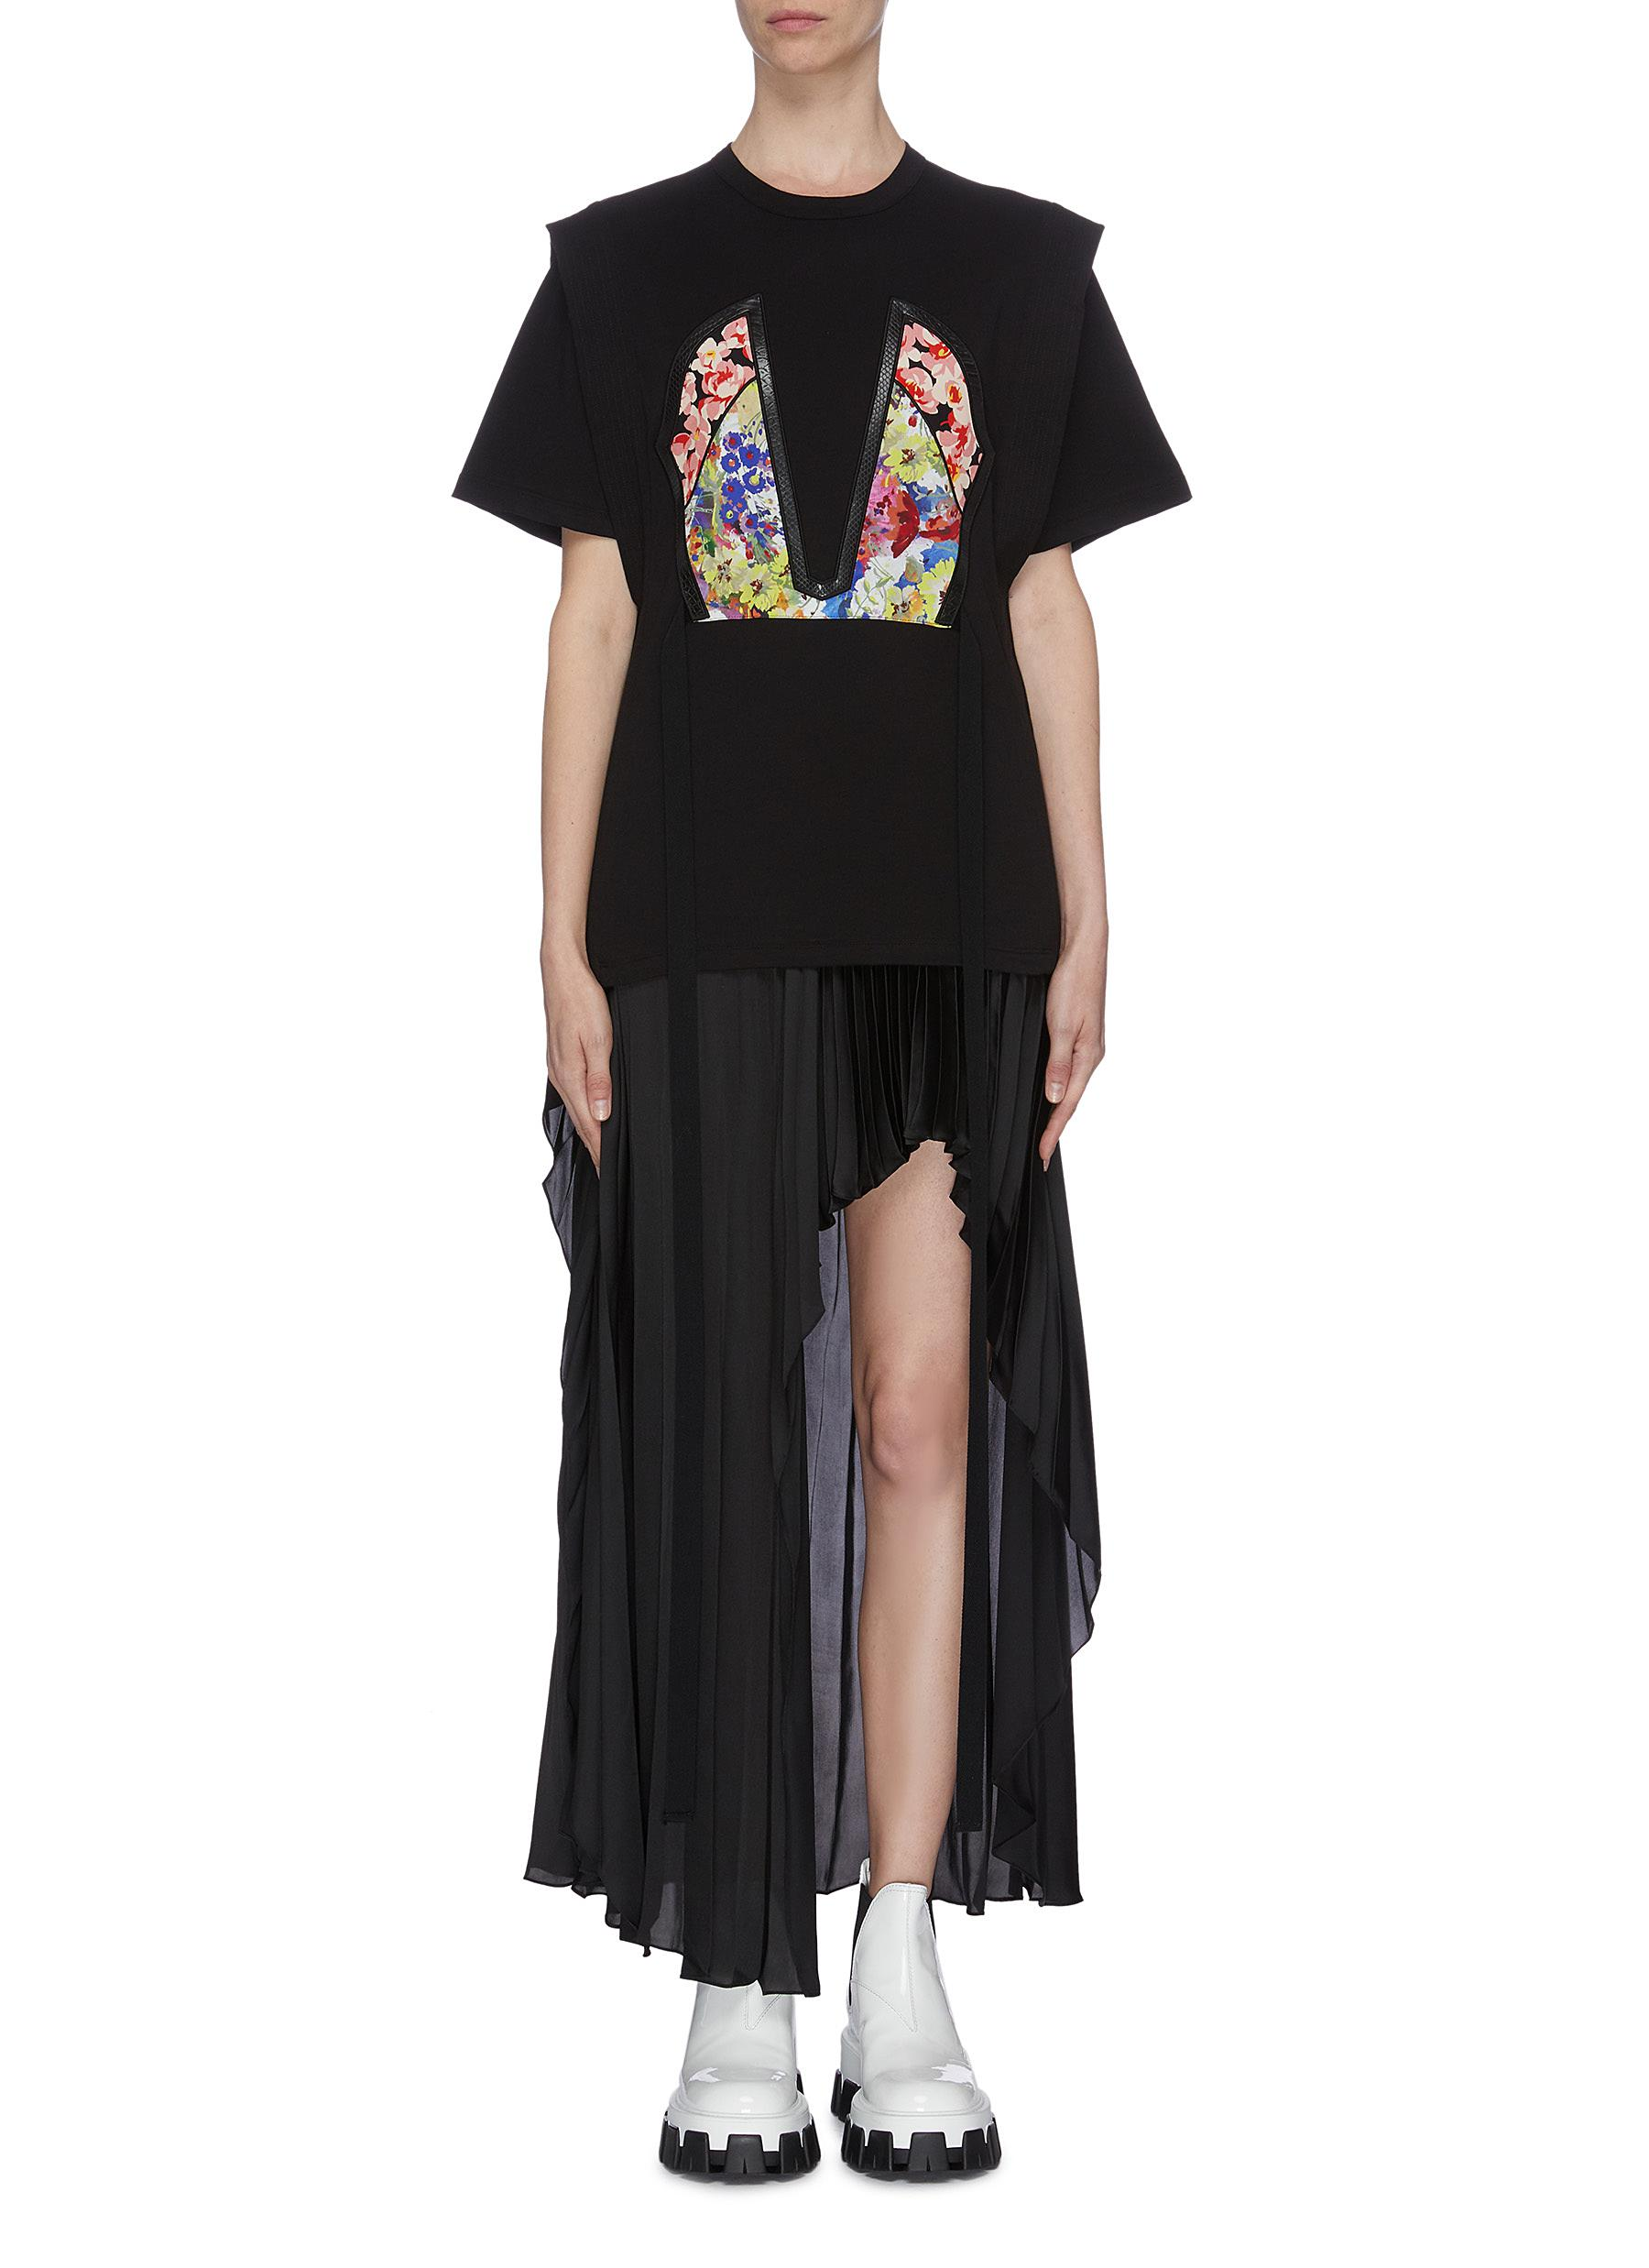 Floral print appliqué tailored T-shirt by Stella Mccartney